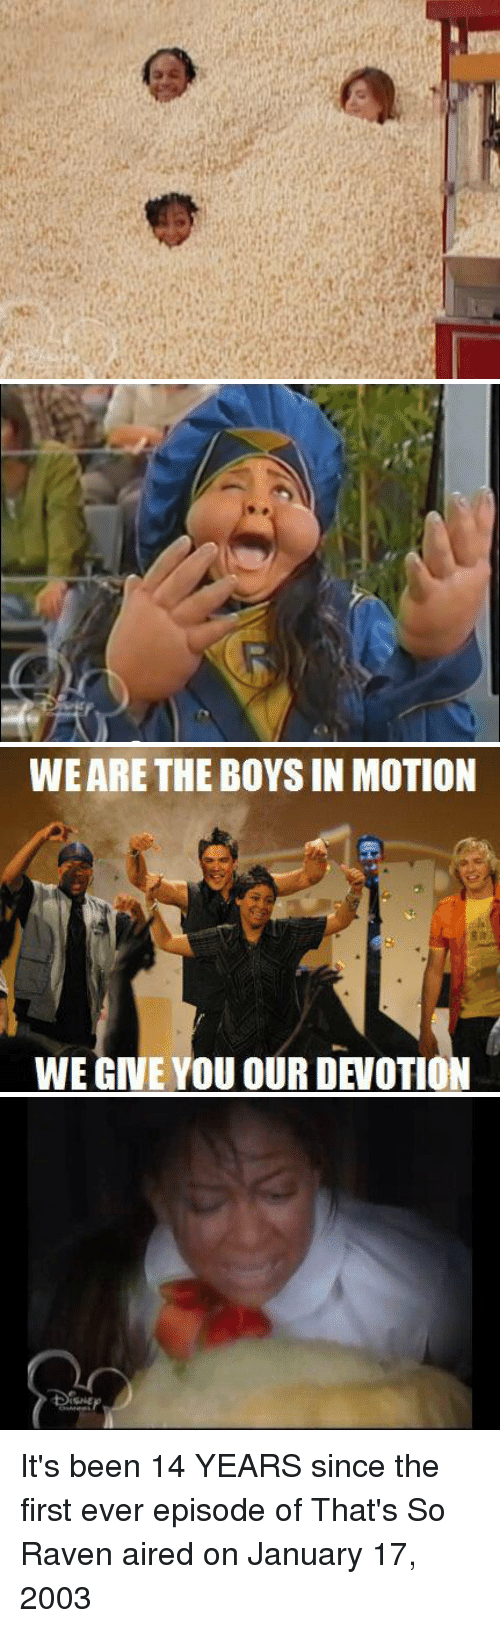 ravenous: a   WE ARE THE BOYS IN MOTION  諀  WE GIVE YOU OUR DEVOTION  us   ISME It's been 14 YEARS since the first ever episode of That's So Raven aired on January 17, 2003